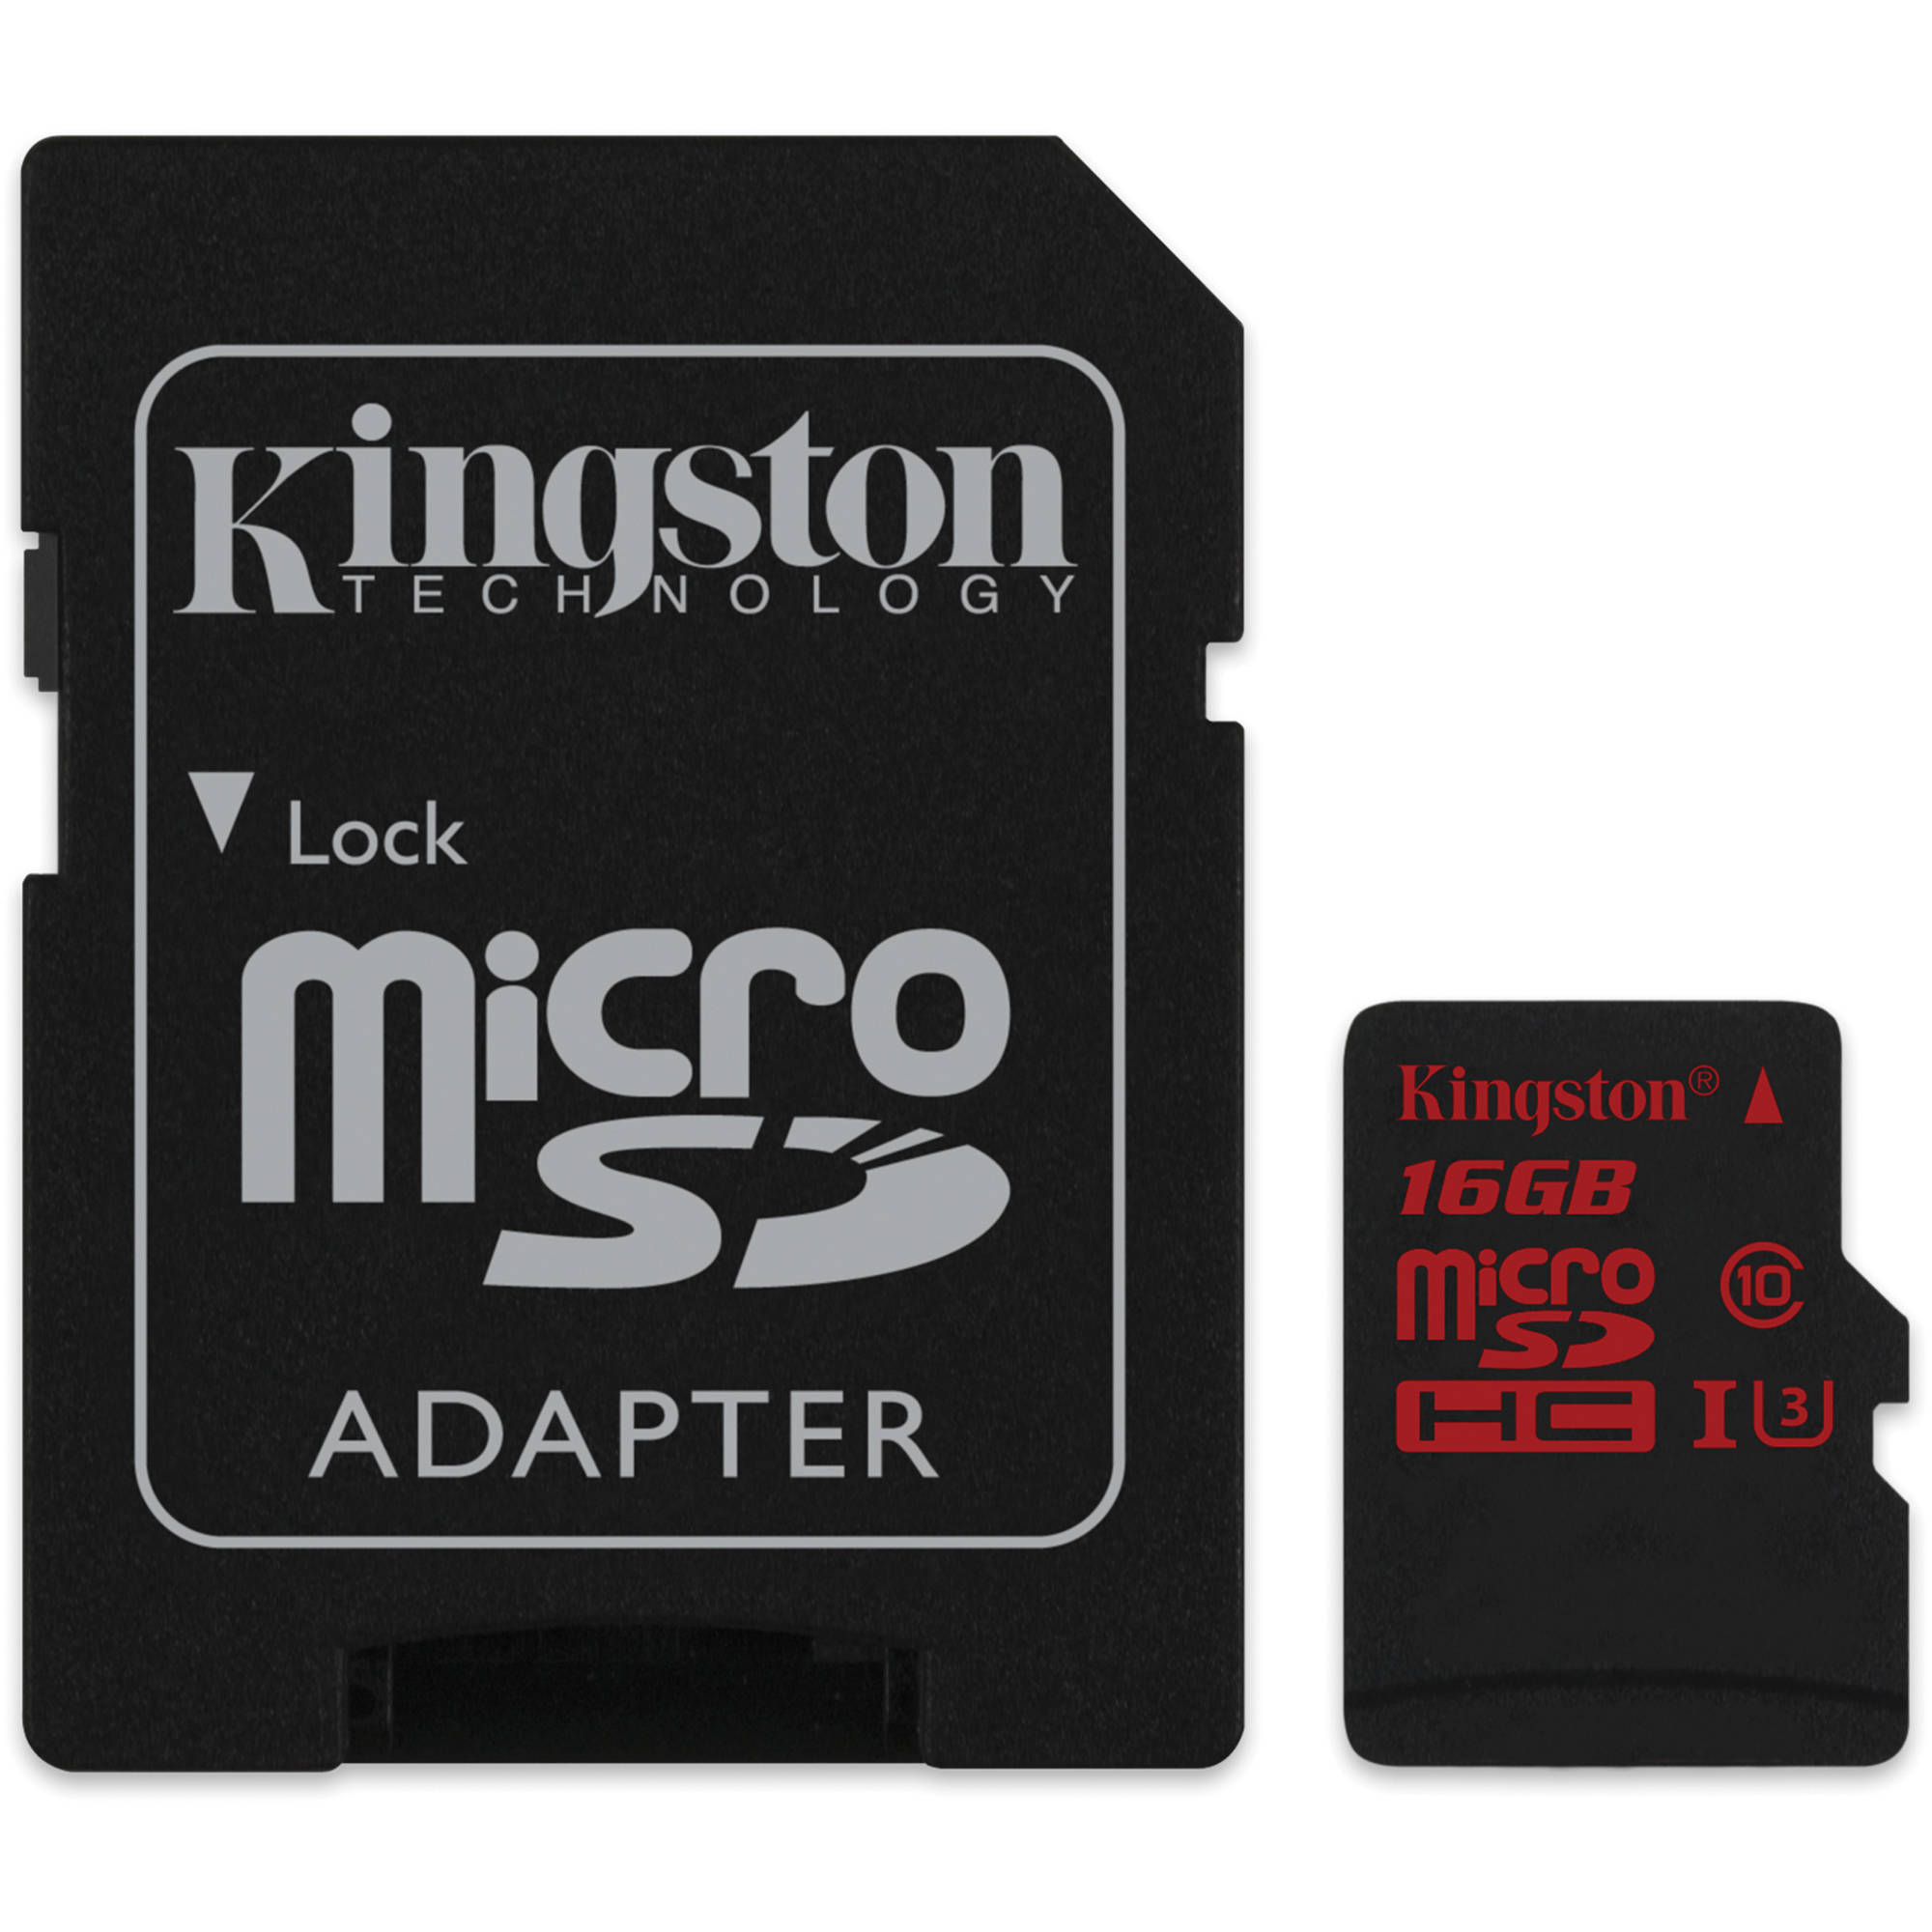 Kingston 16GB UHS-I U3 microSDHC Memory Card